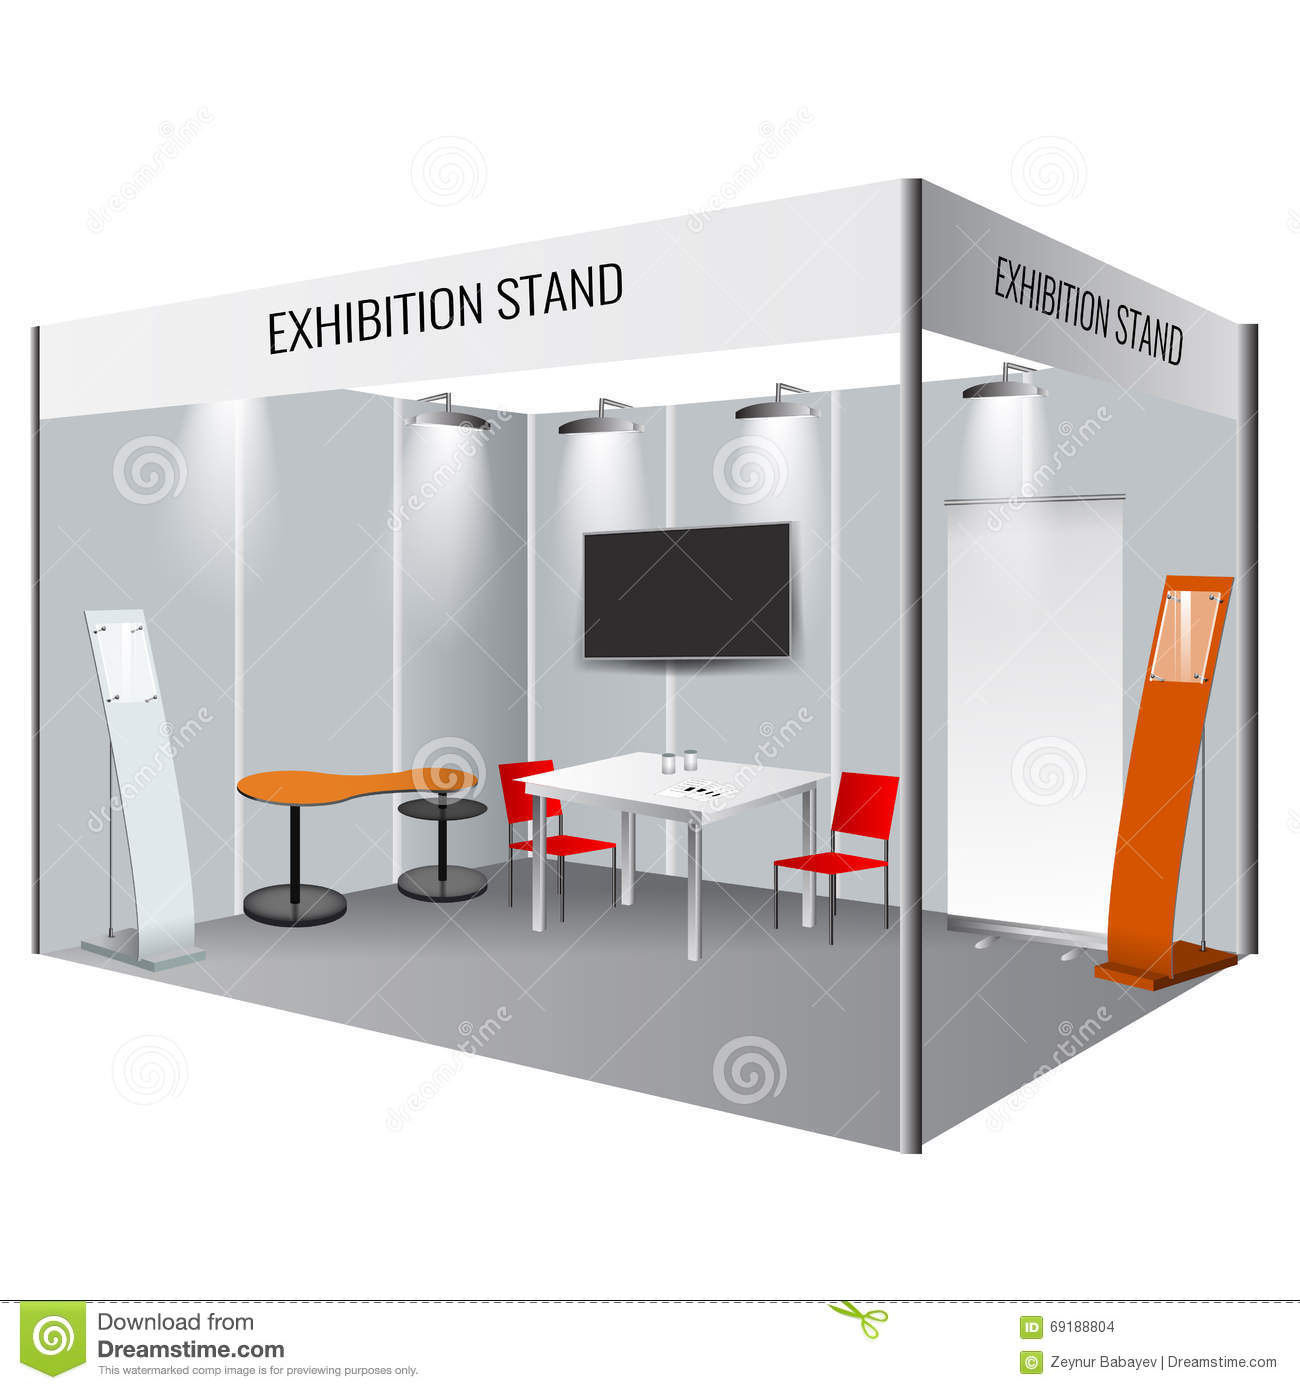 Exhibition Booth Website : Creative exhibition stand design booth template